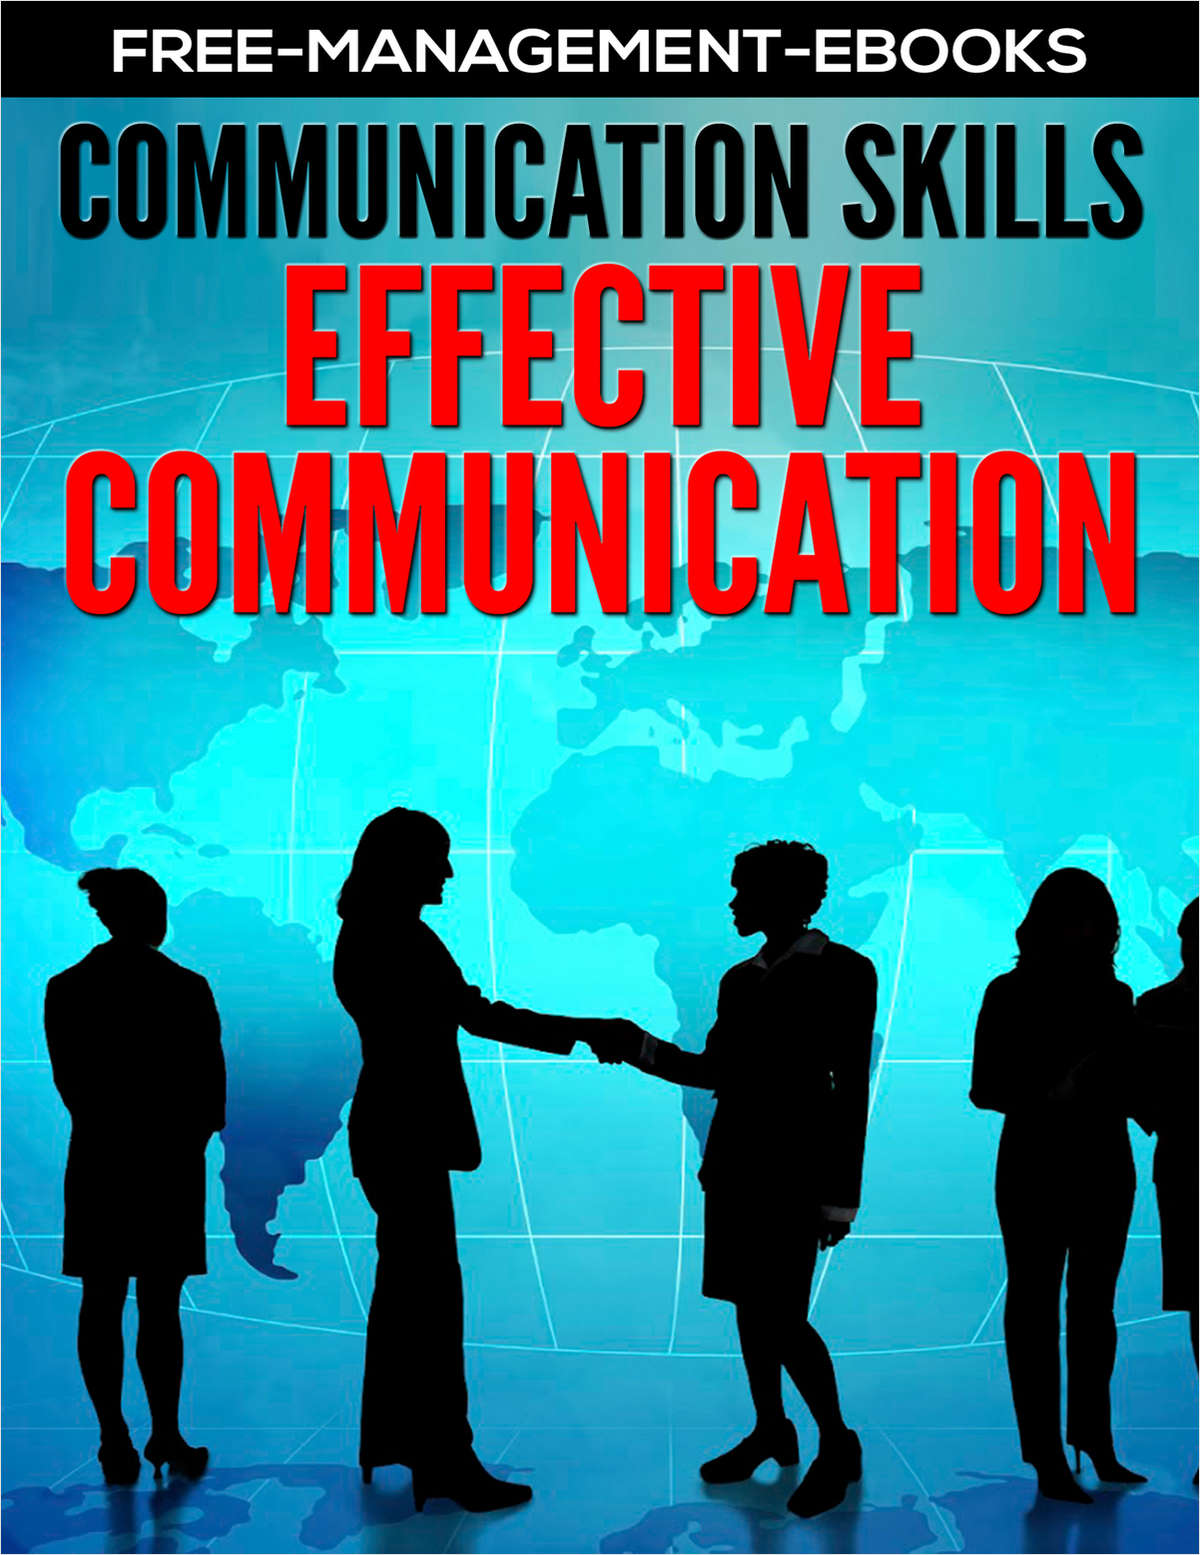 Effective Communications - Developing Your Communication Skills